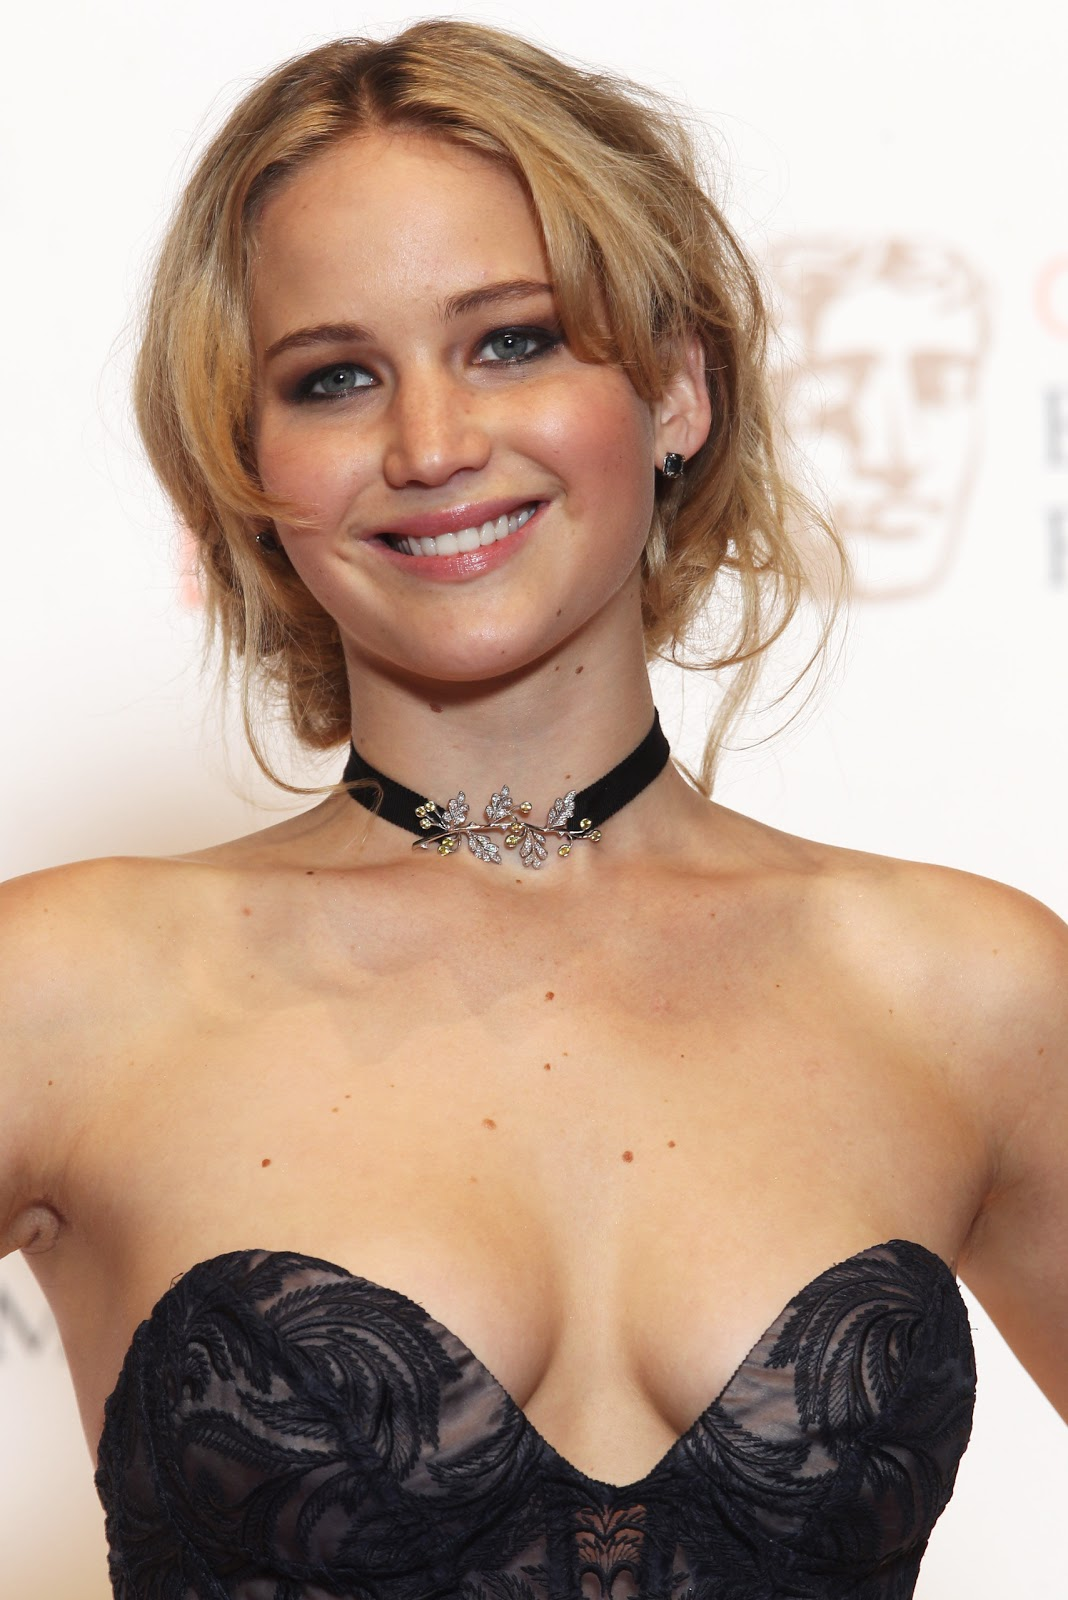 Jennifer Lawrence Family School The Hottest Girl Jennifer Lawrence